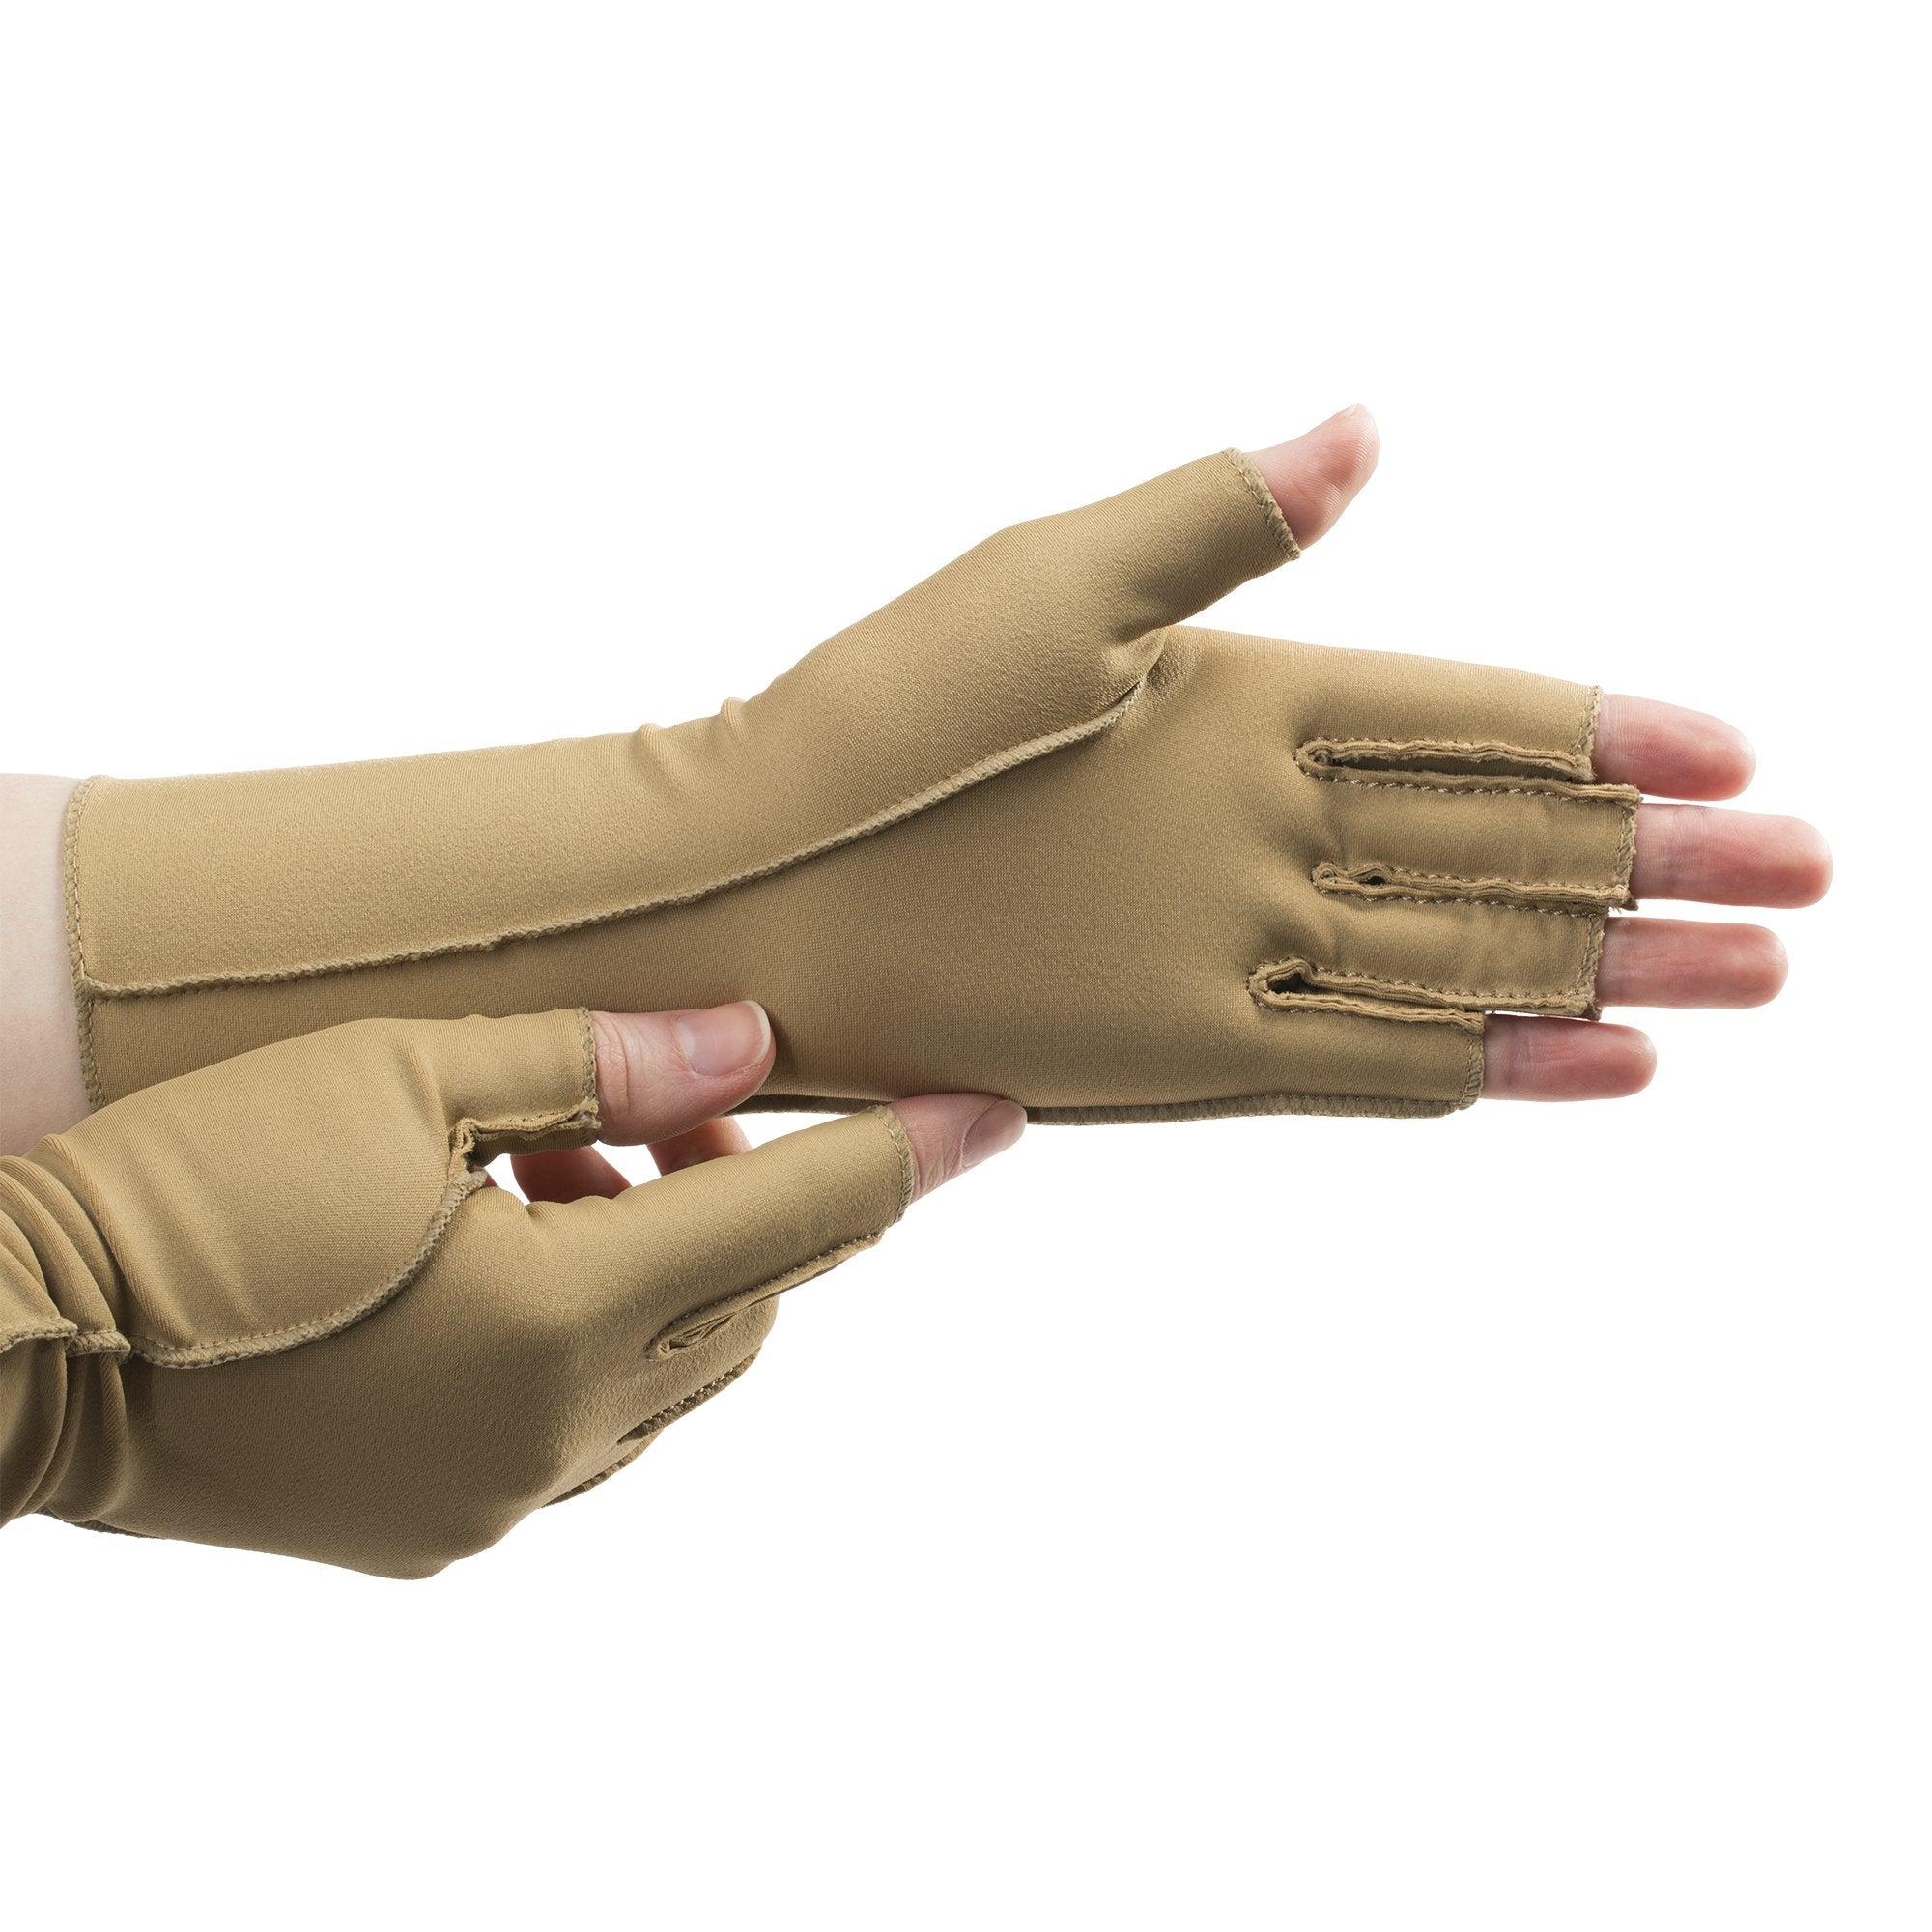 Isotoner Fingerless Therapeutic Compression Gloves